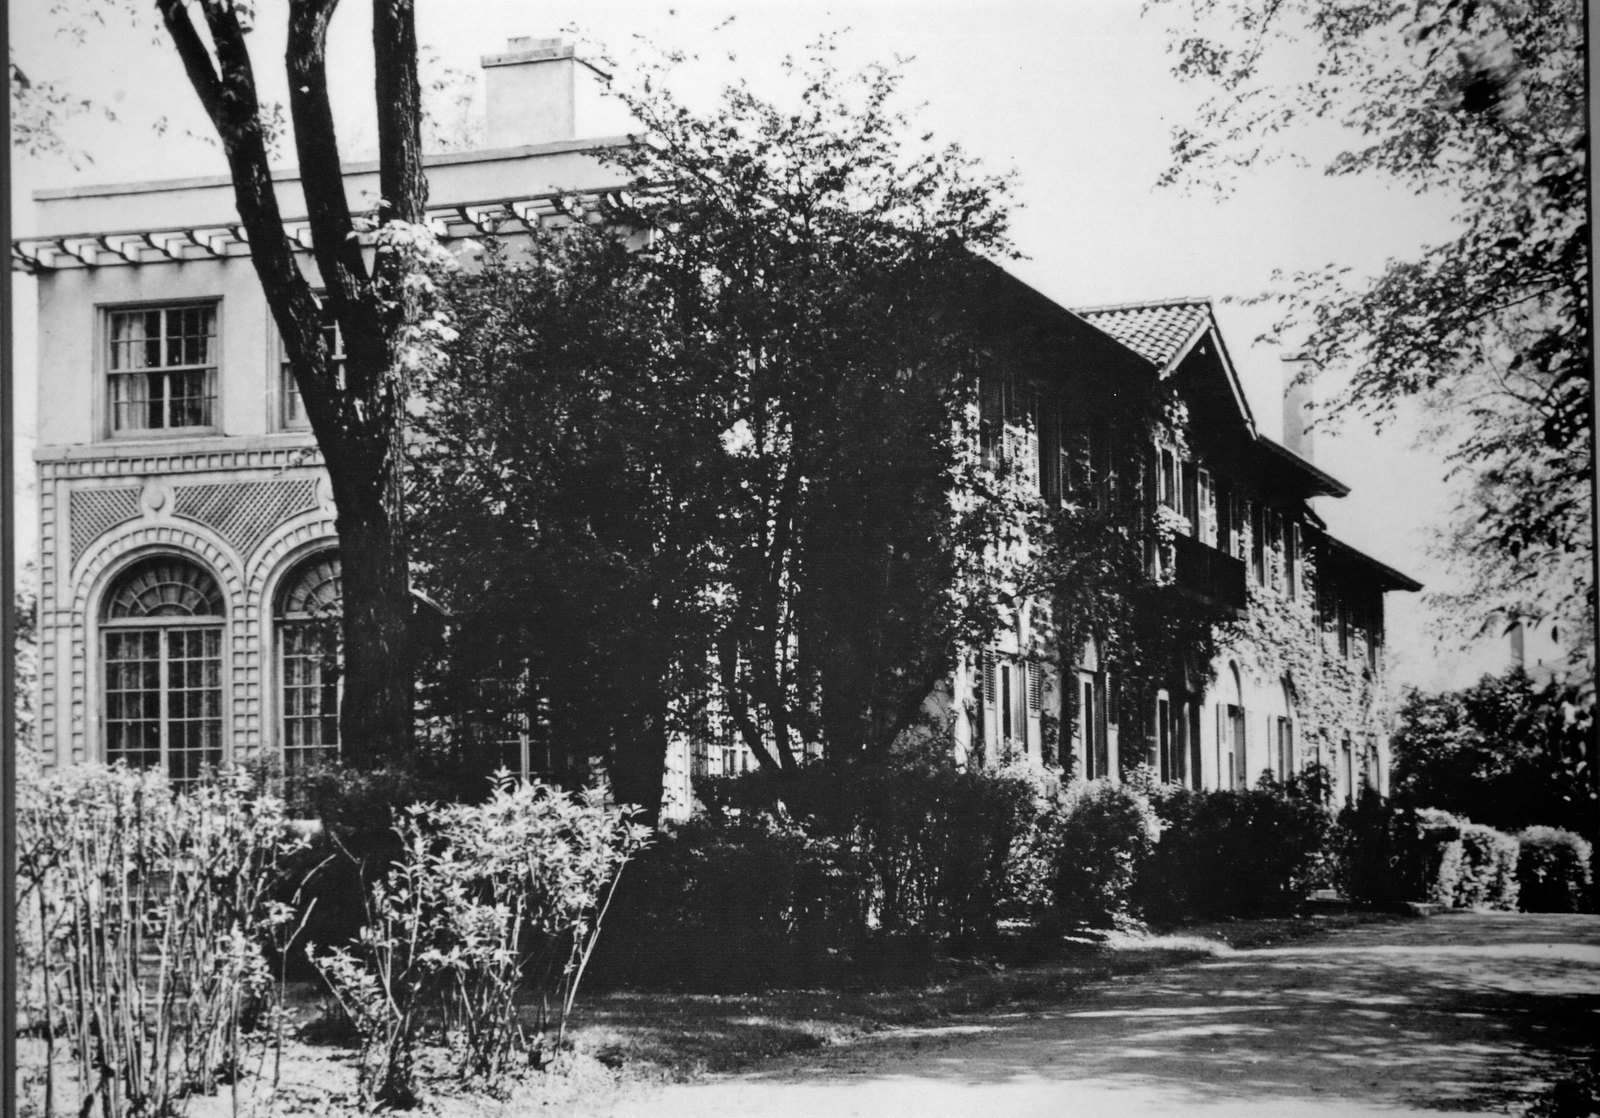 When Crouch's wife became ill in 1935, the couple moved to California and Crouch sold the mansion to George Waite. Purchased from the Waite family in 1948, the newly named Rosary Hall was the first home to Rosary Hill College, now Daemen College. Photo courtesy of Daemen College.